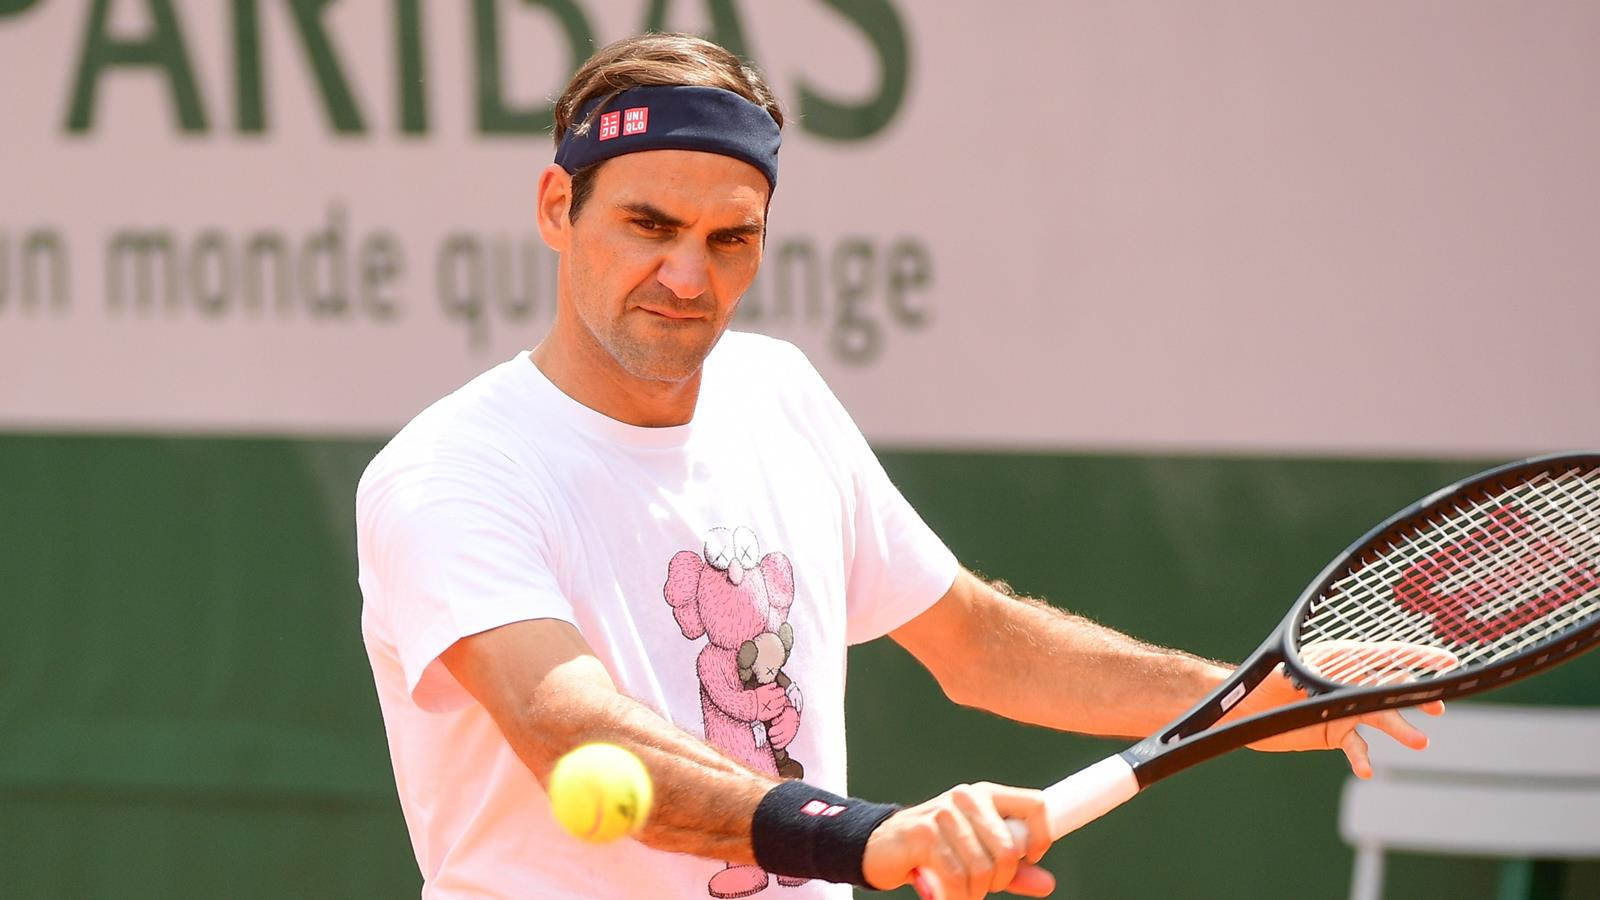 French Open 2019: Roger Federer to face Lorenzo Sonego in Roland Garros return